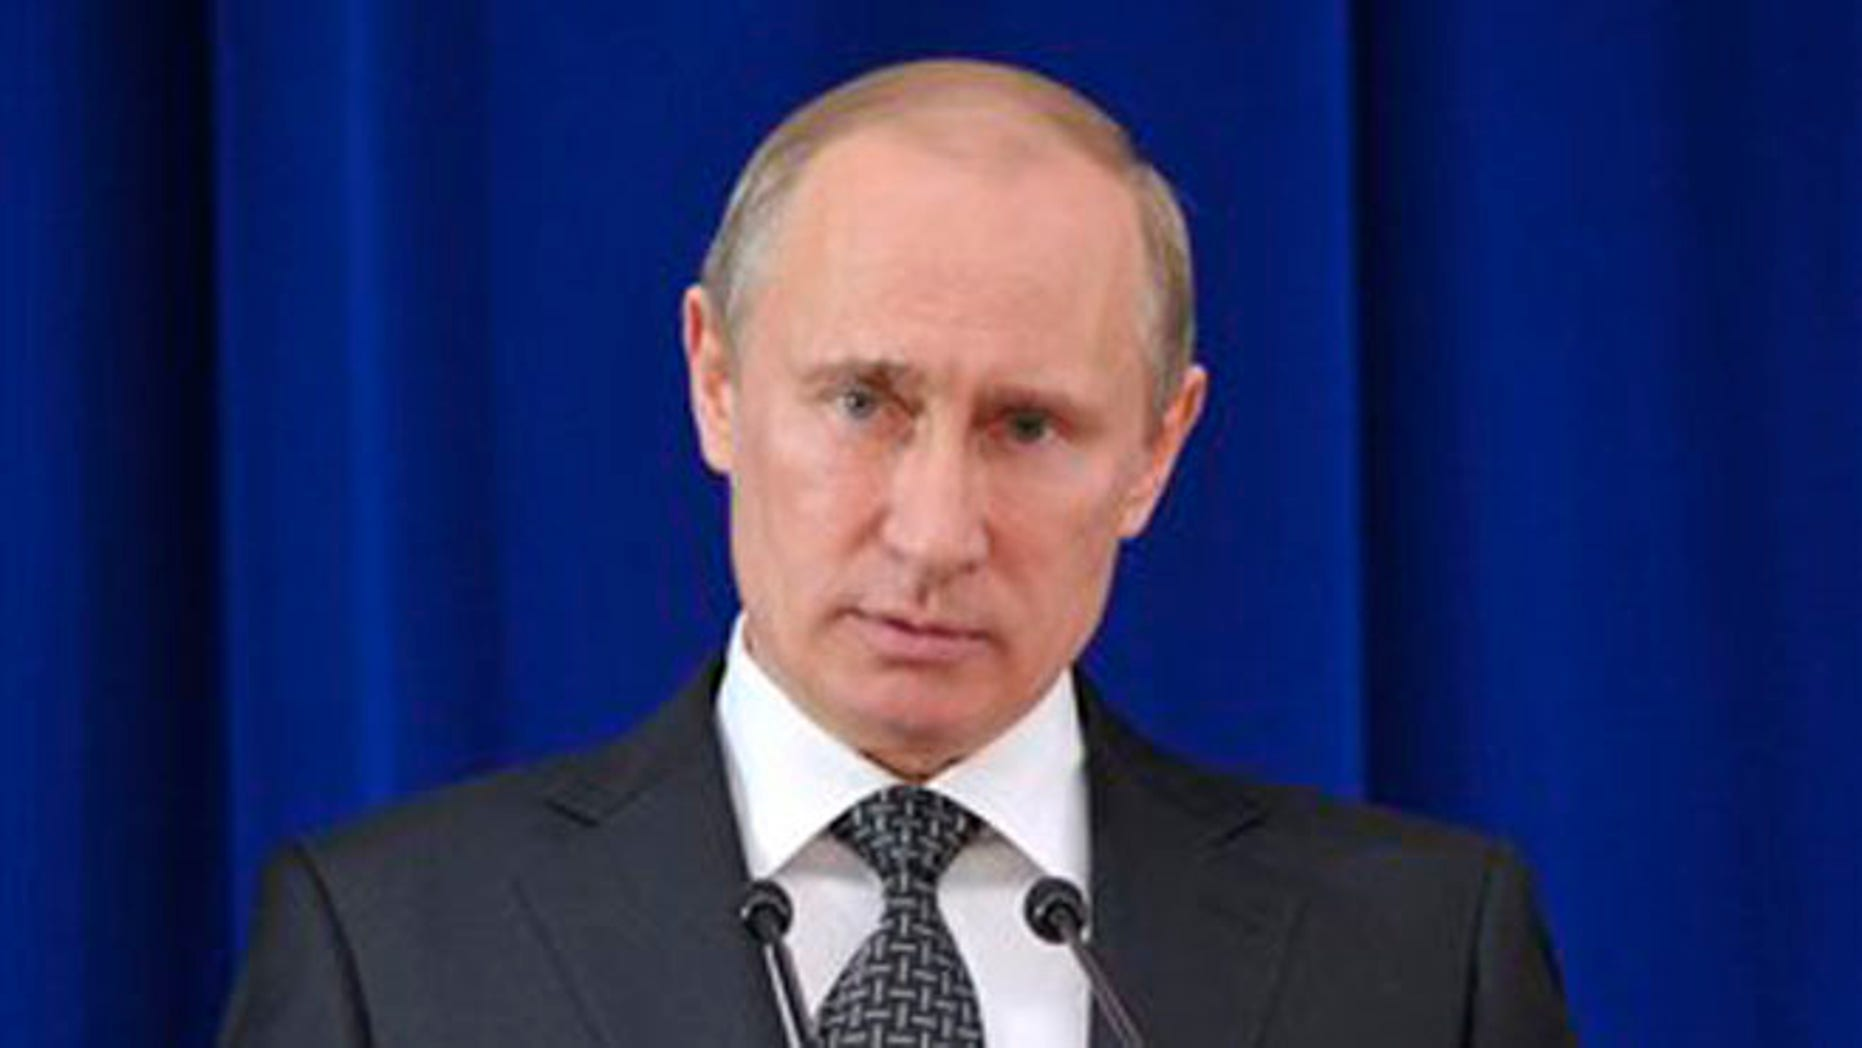 May 30, 2012: Russian President Vladimir Putin speaks at a meeting marking the 20th anniversary of the Russian Security Council in the Kremlin in Moscow.